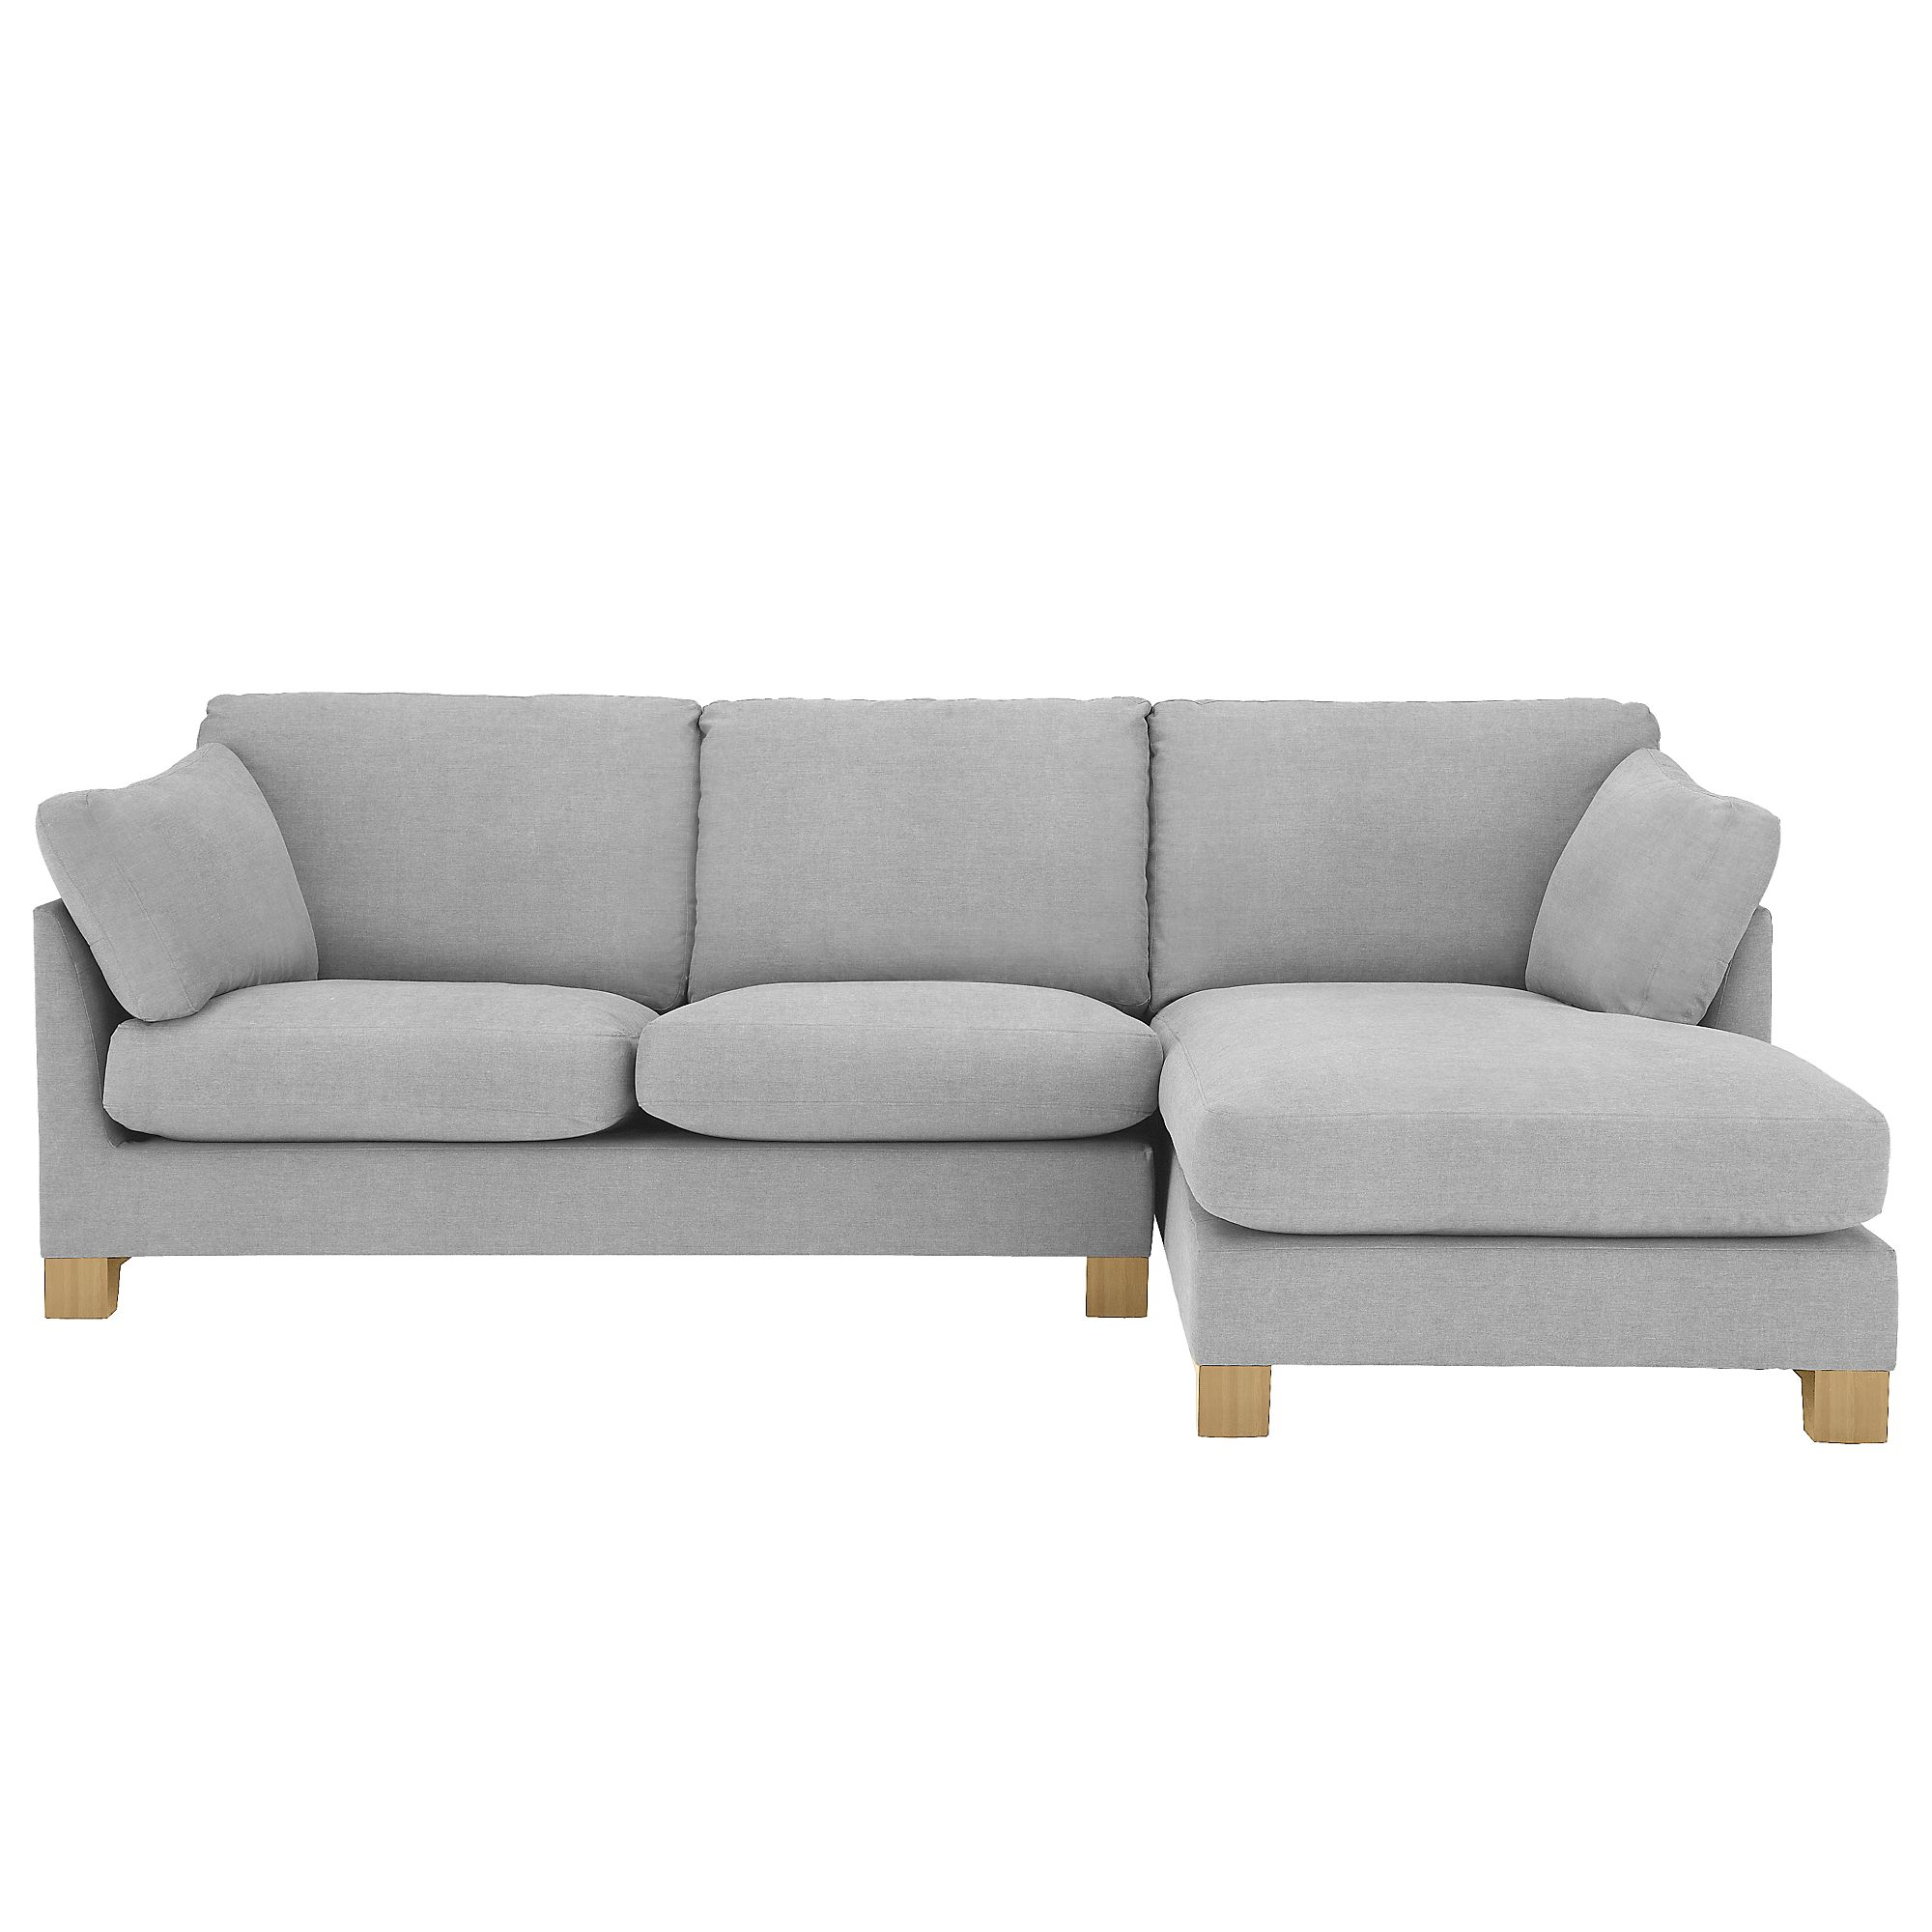 John Lewis Ikon RHF Chaise End Sofa